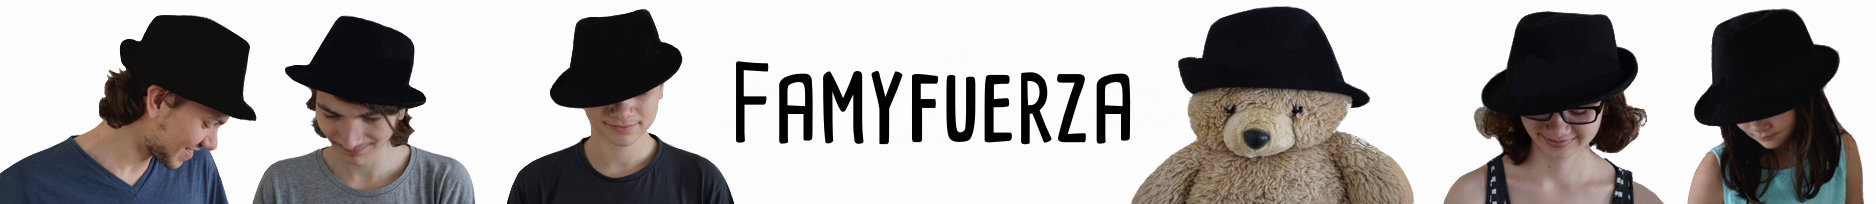 Famyfuerza | Determined | Motivated | Always a way | Inspiration | Positive | Innovative